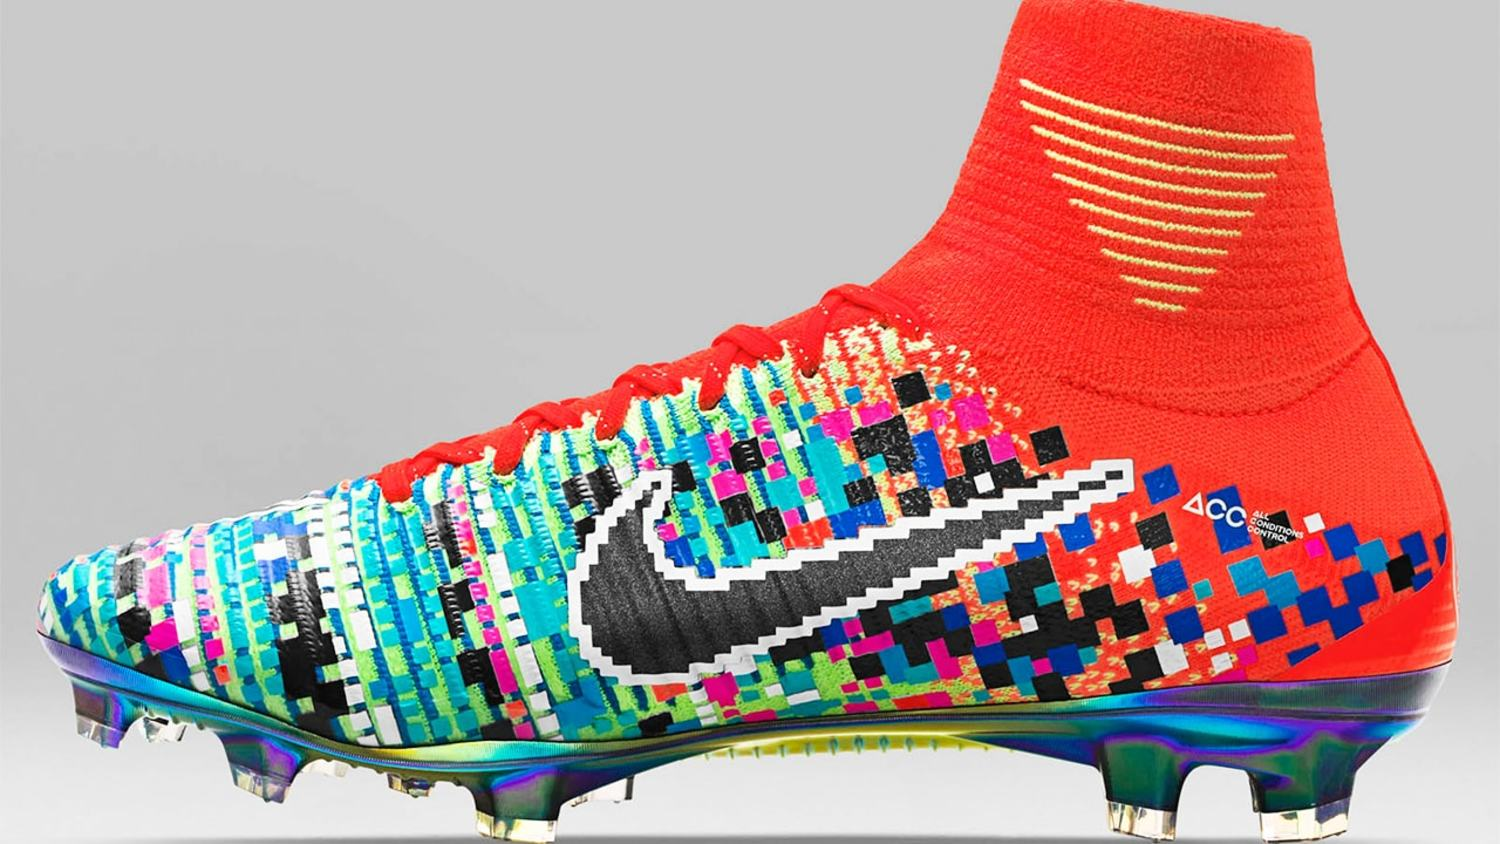 Nike Release Stunning Limited Edition EA Sports Mercurial Boots